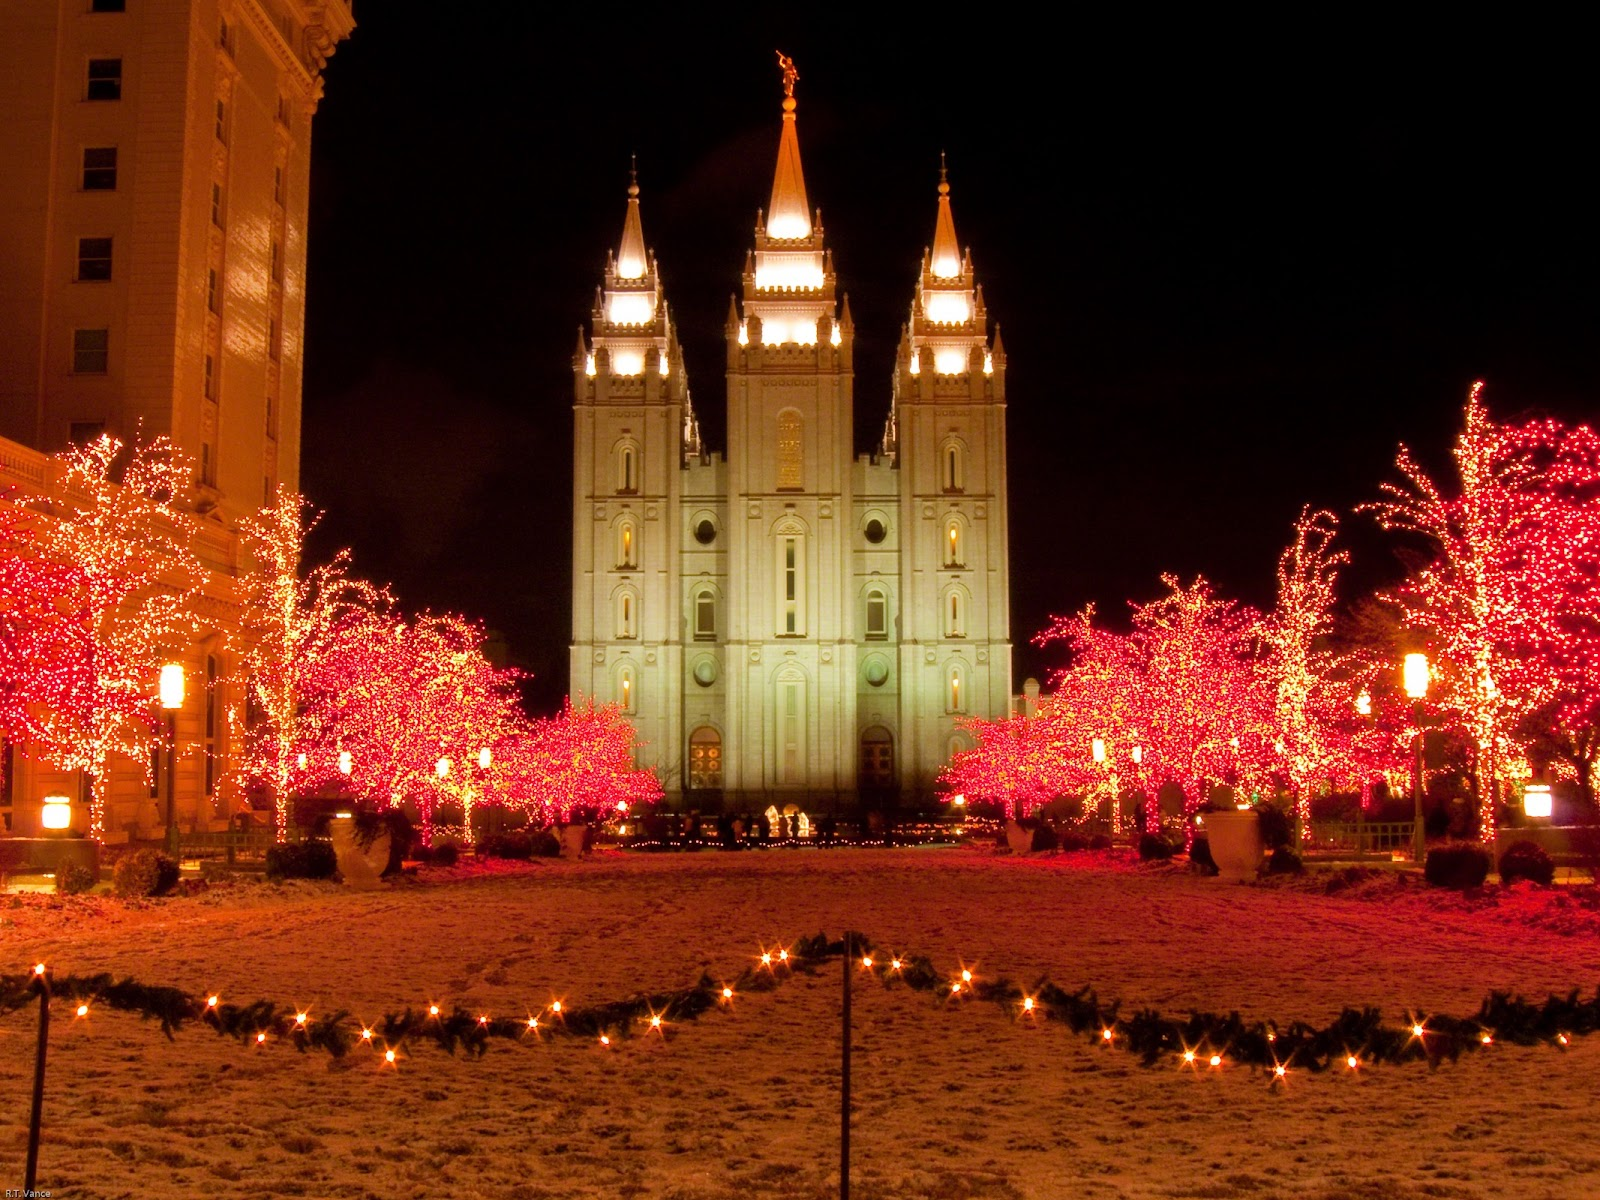 Christmas lights on trees in Salt Lake City, Utah